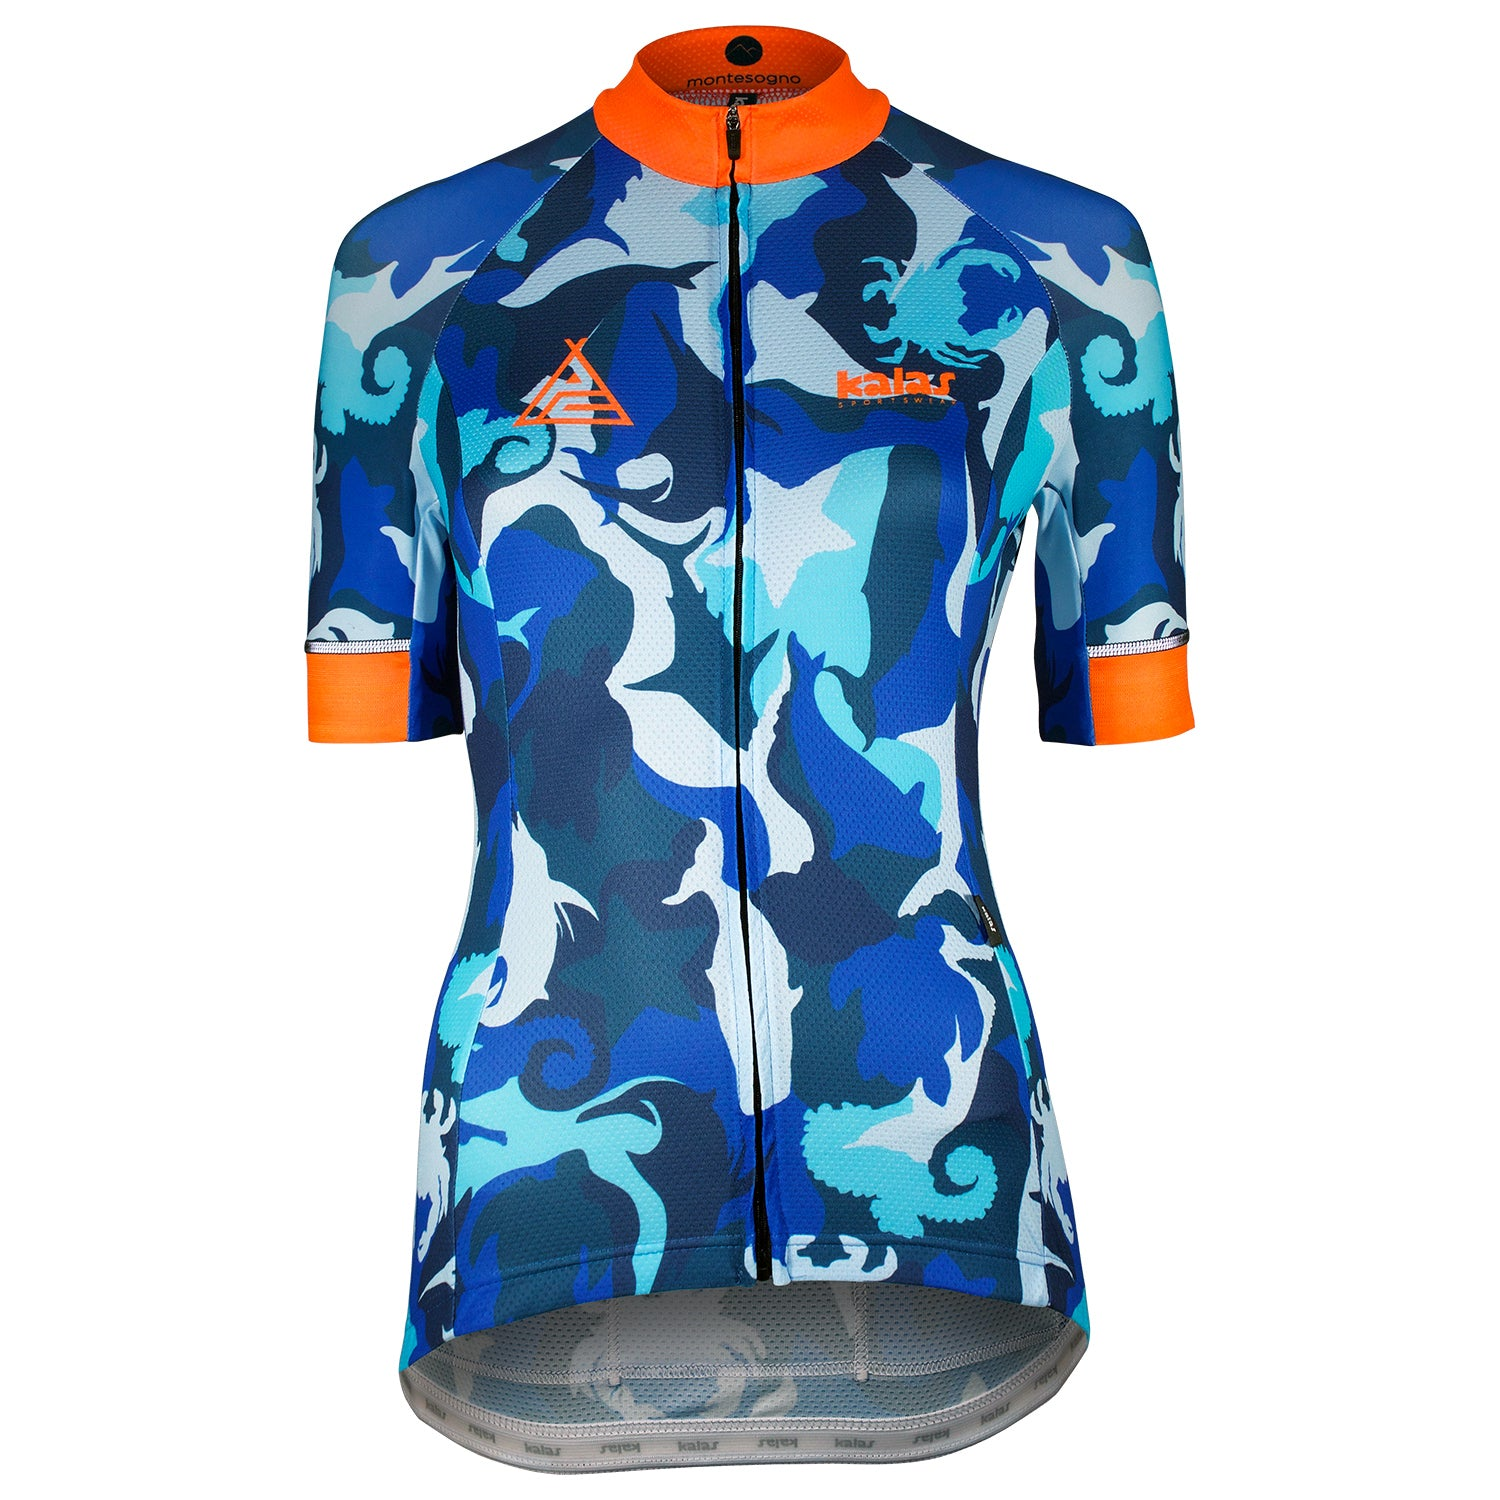 84ca18c40 Women's cycle clothing available to buy online   Prendas Ciclismo